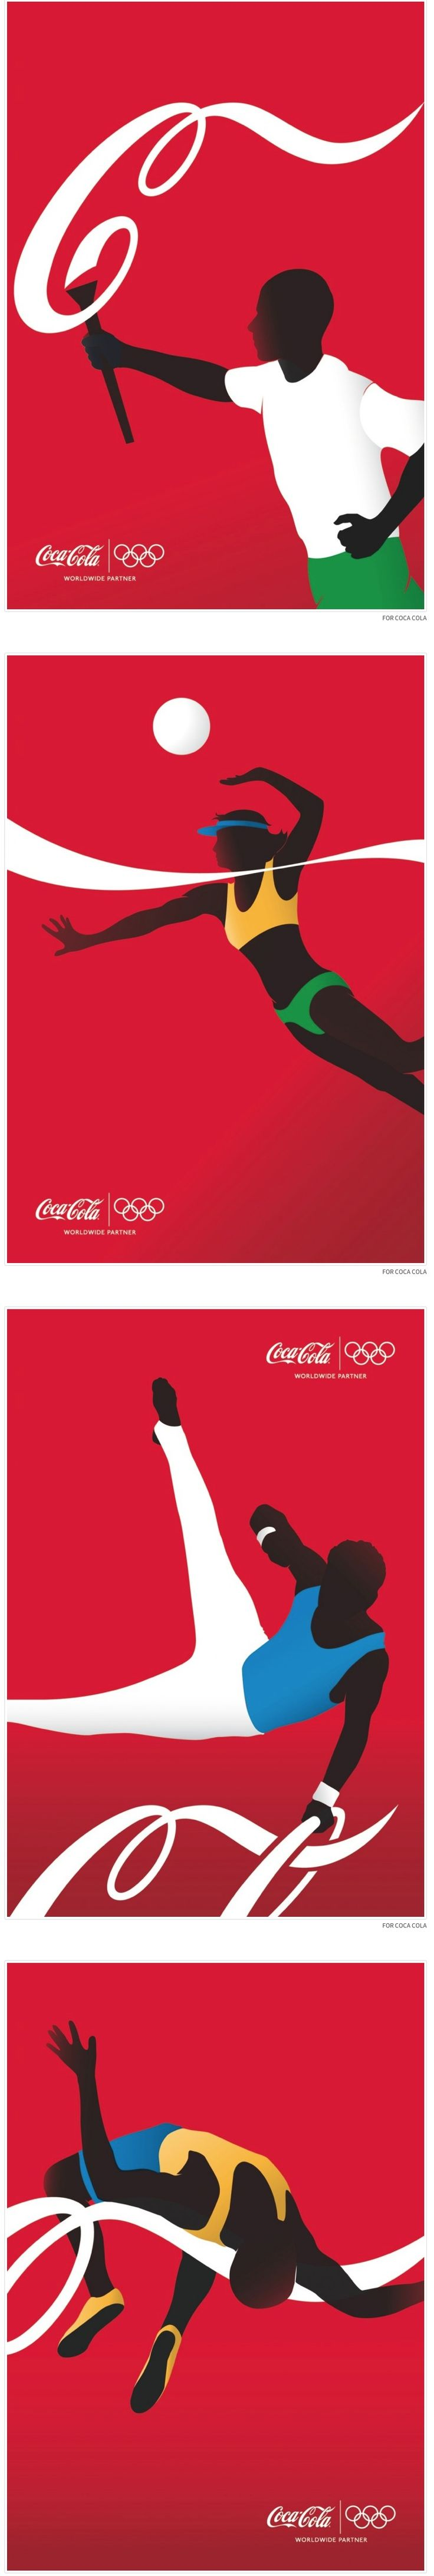 코카콜라 올림픽 광고 Creative COCA COLA Olympic Ads